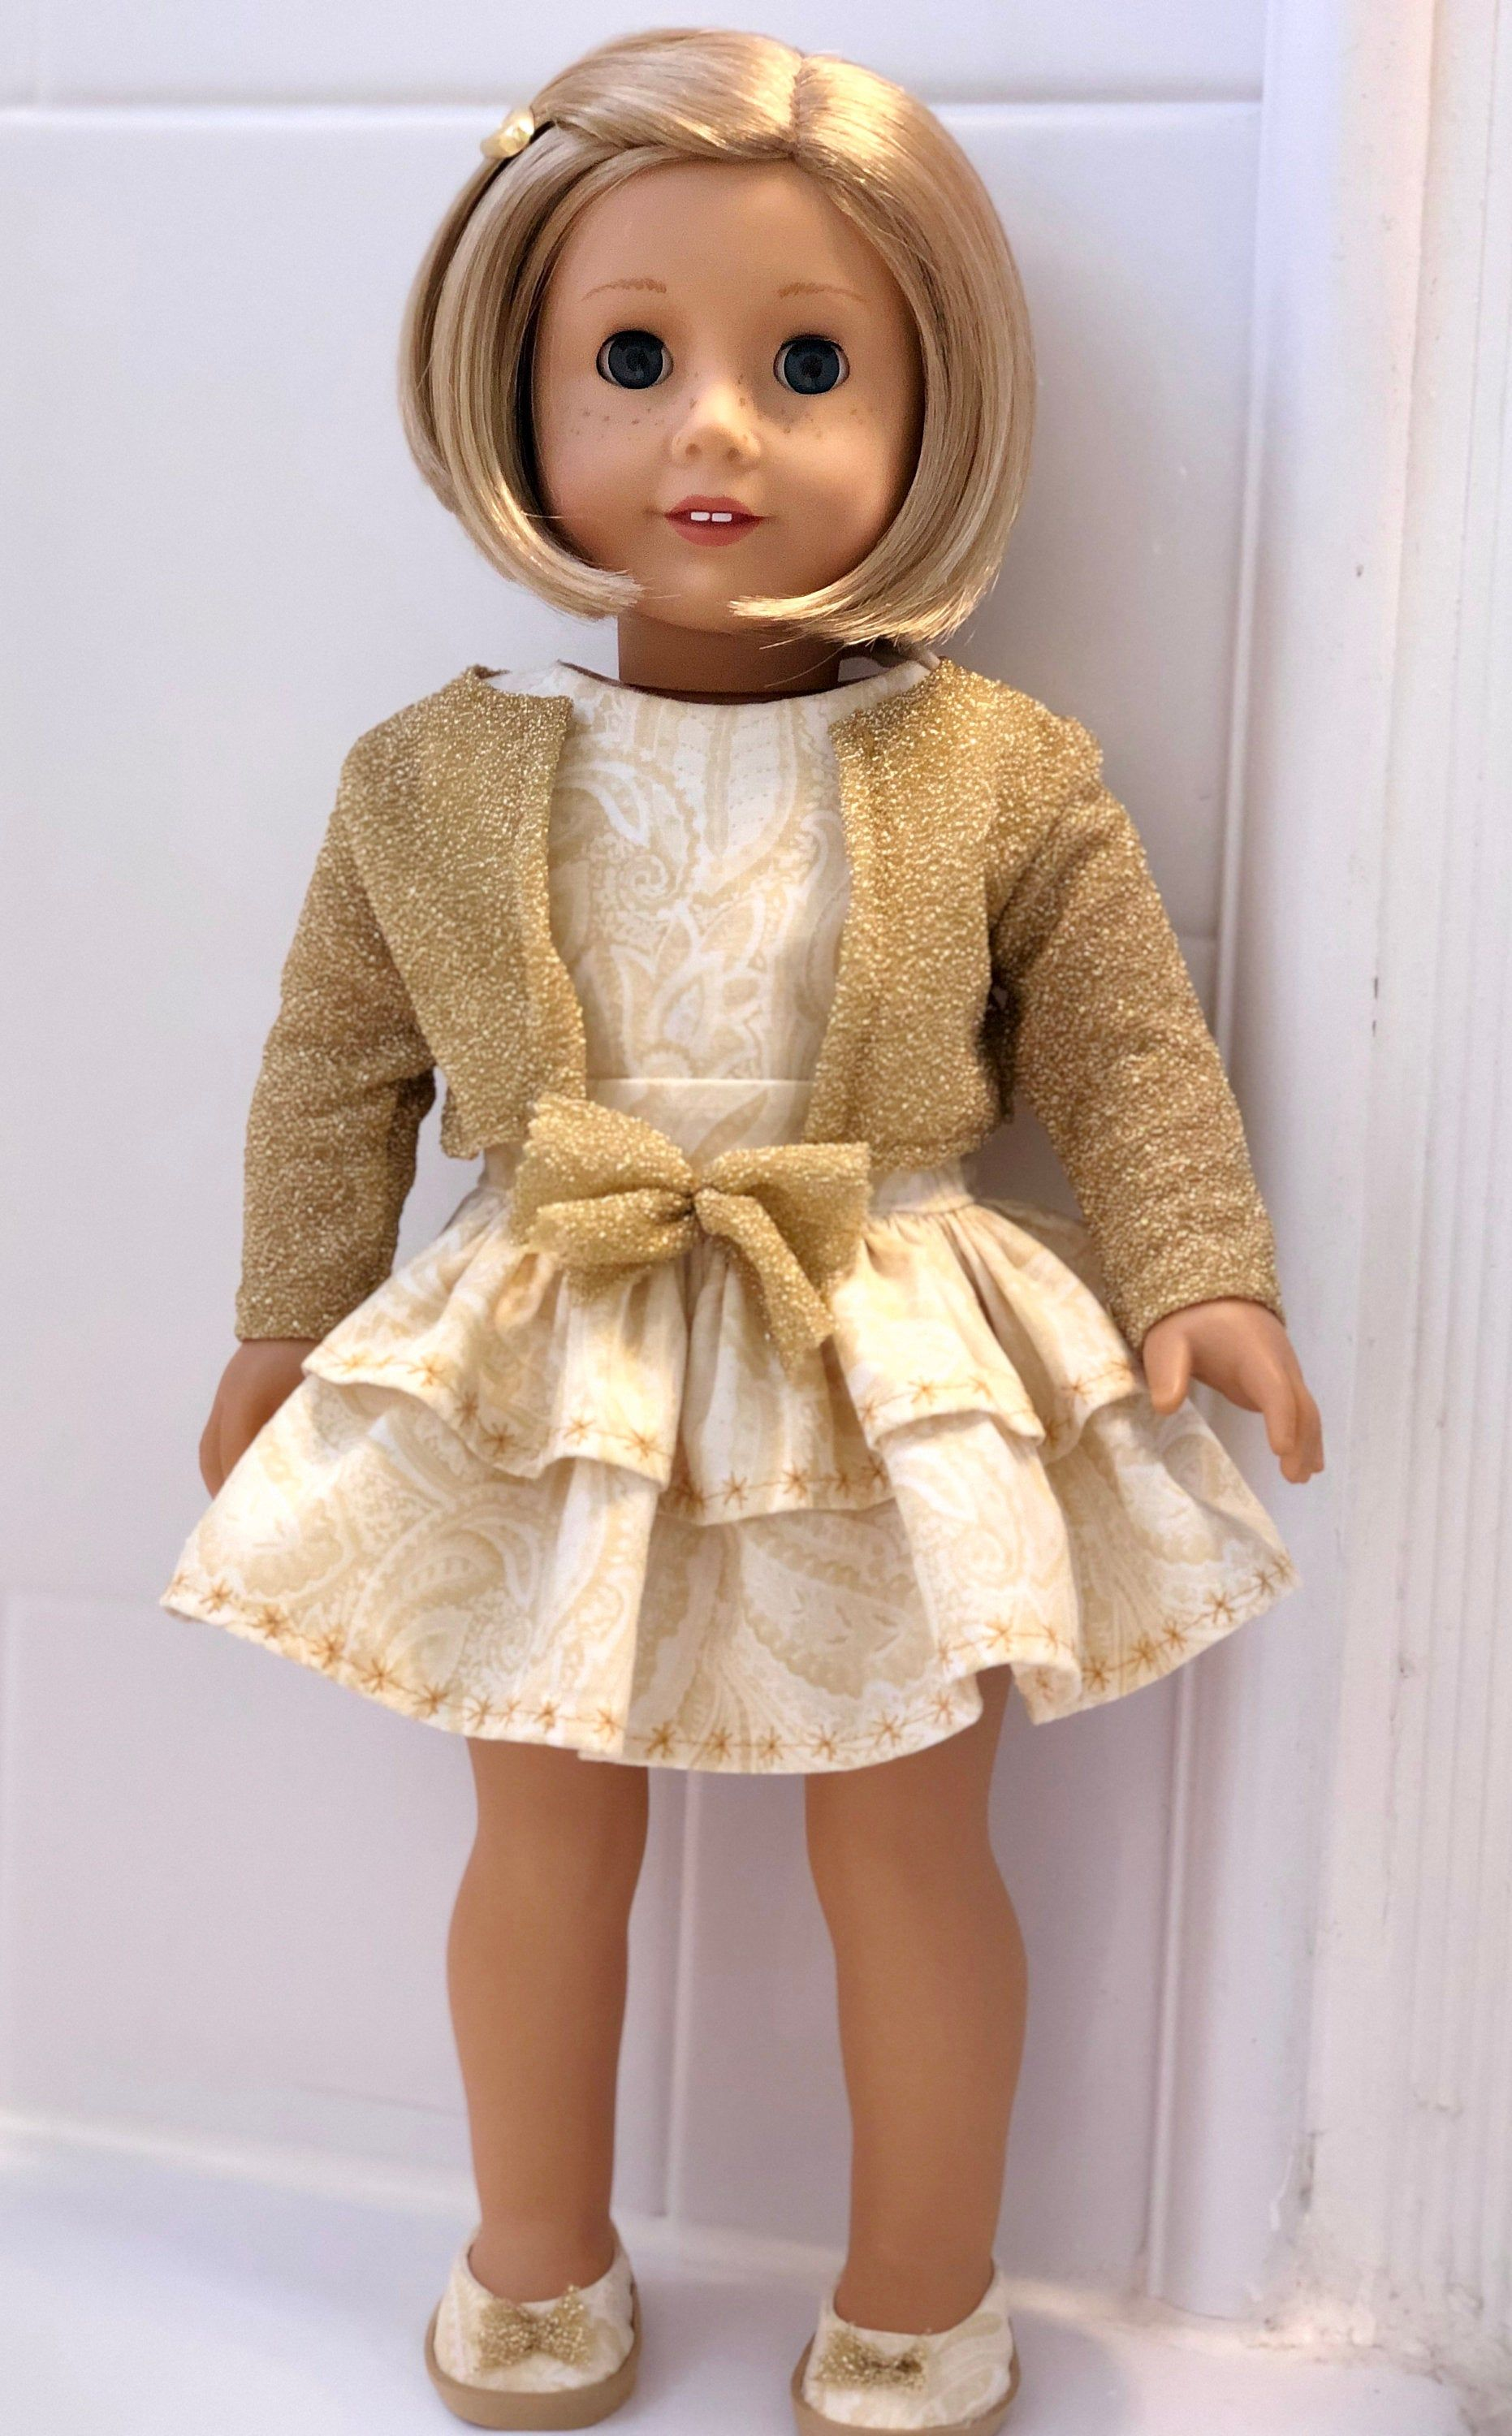 18 Inch Doll Clothes- Golden Sparkle Holiday Dress, Sweater, and Shoes for 18 Inch Dolls Such as THE Most Popular Girl Doll #18inchdollsandclothes